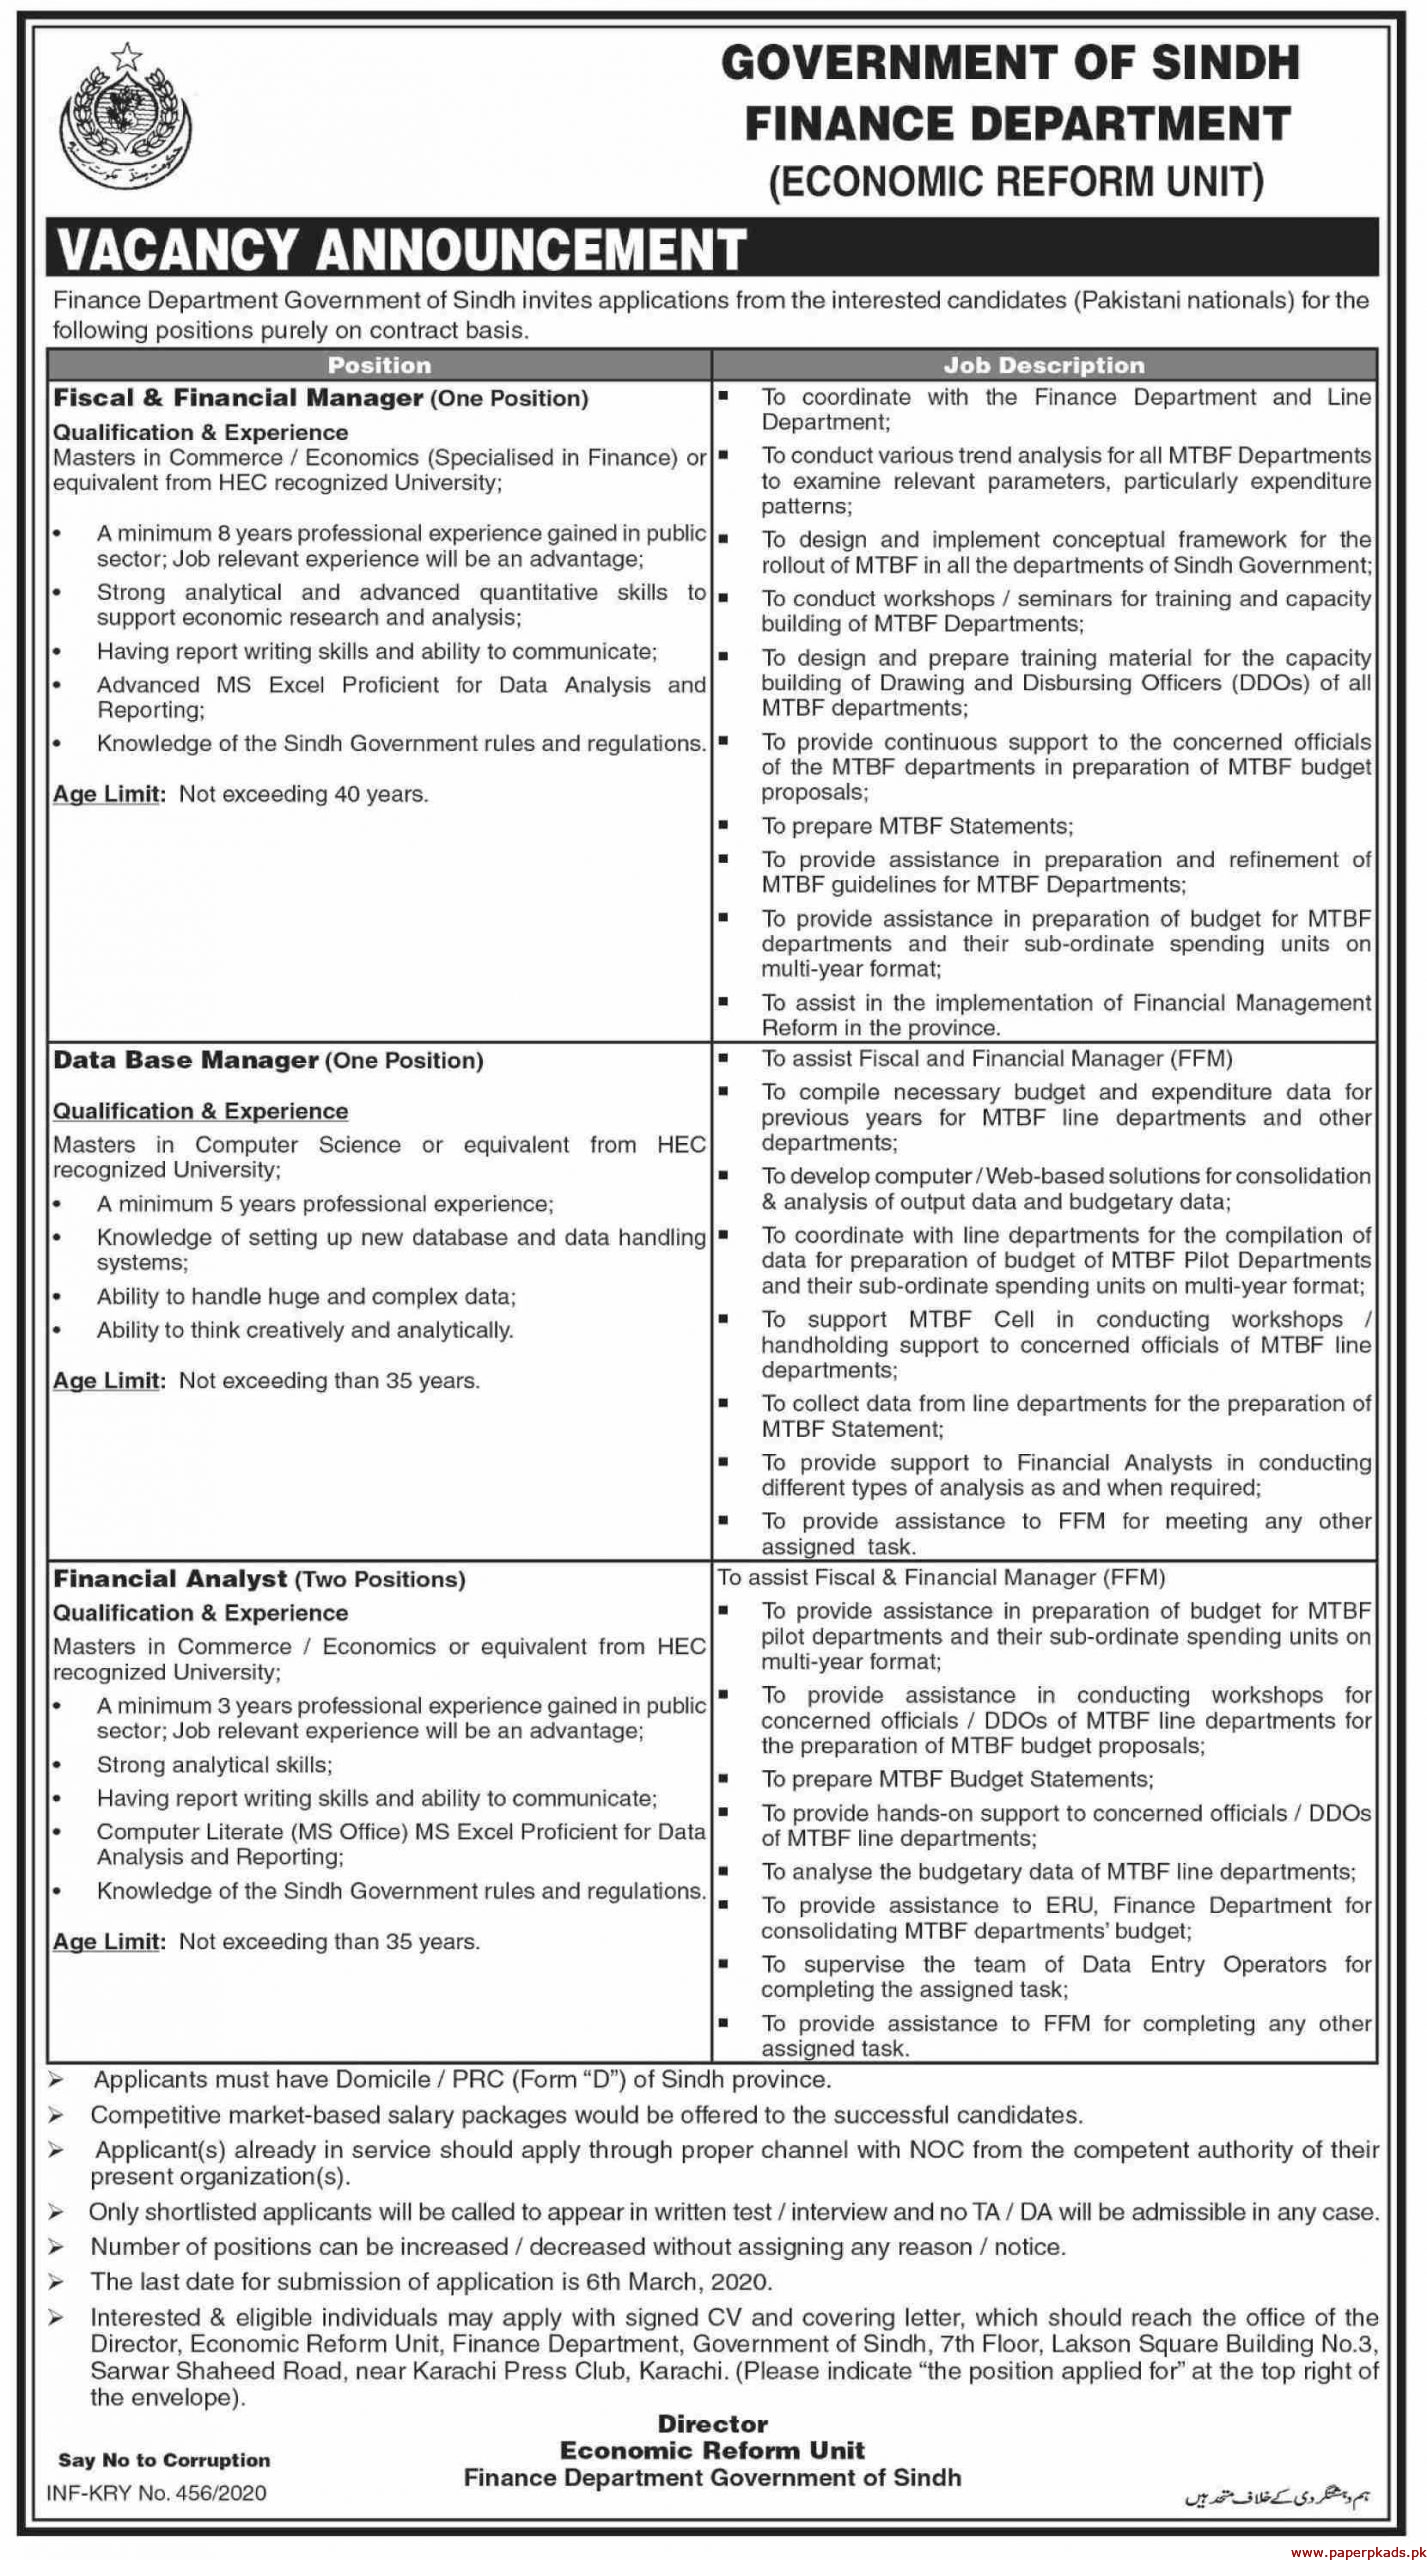 Government of Sindh Finance Department Jobs 2020 Latest